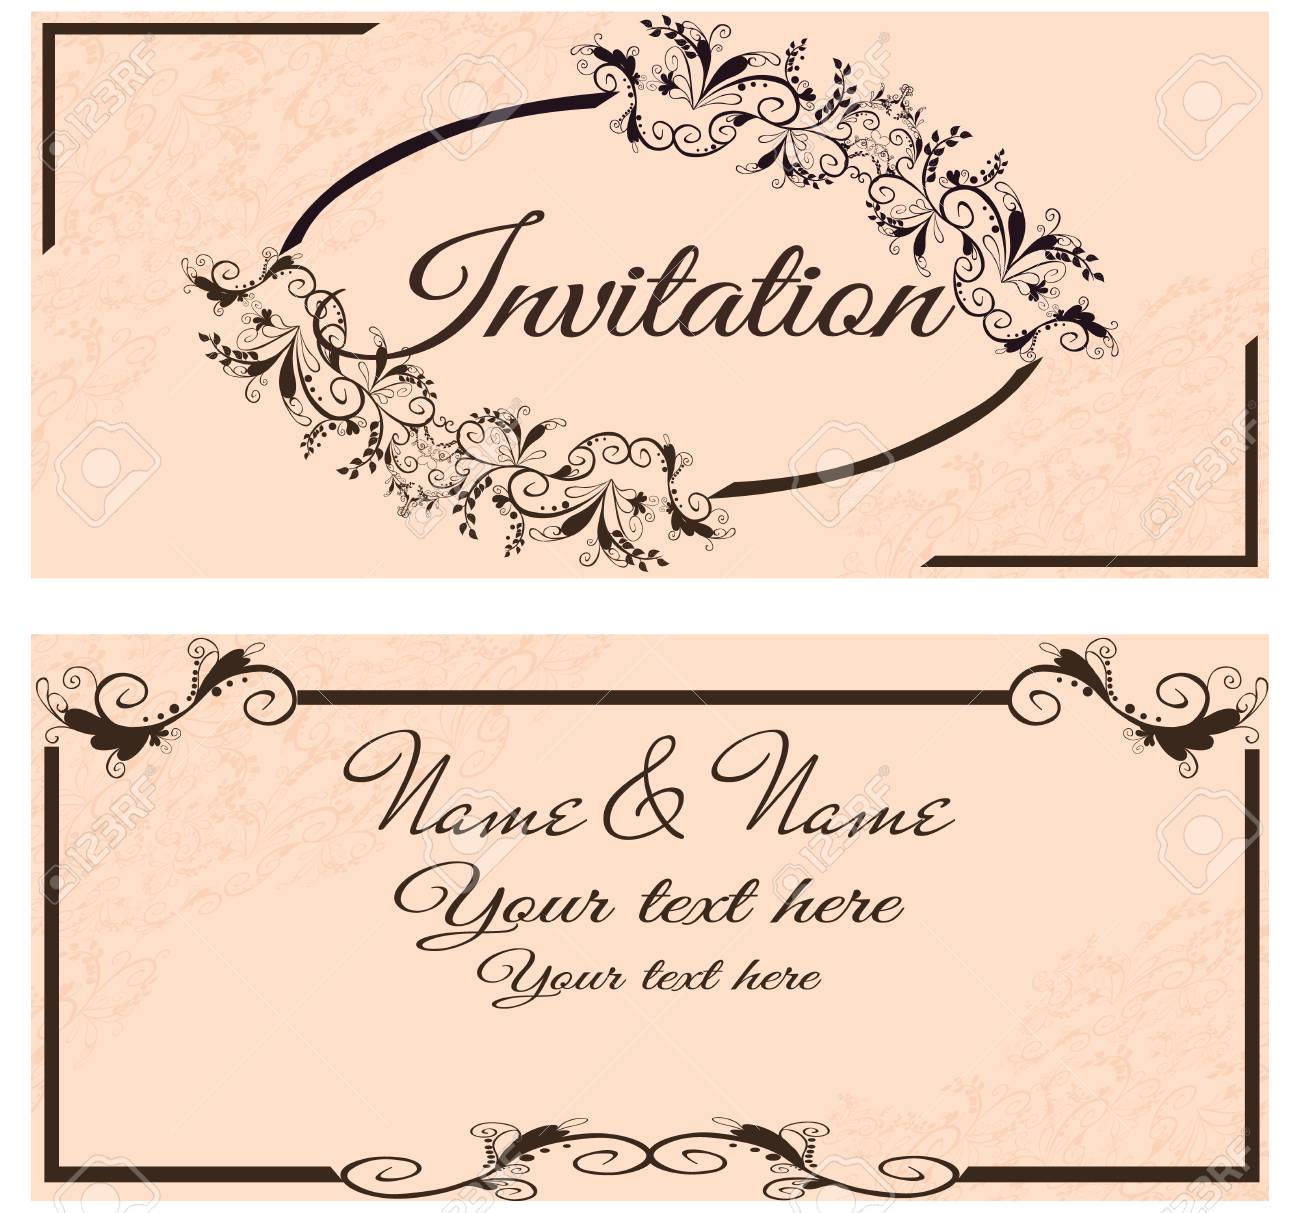 vector illustration vintage invitation card for wedding isolated royalty free cliparts vectors and stock illustration image 38283827 123rf com